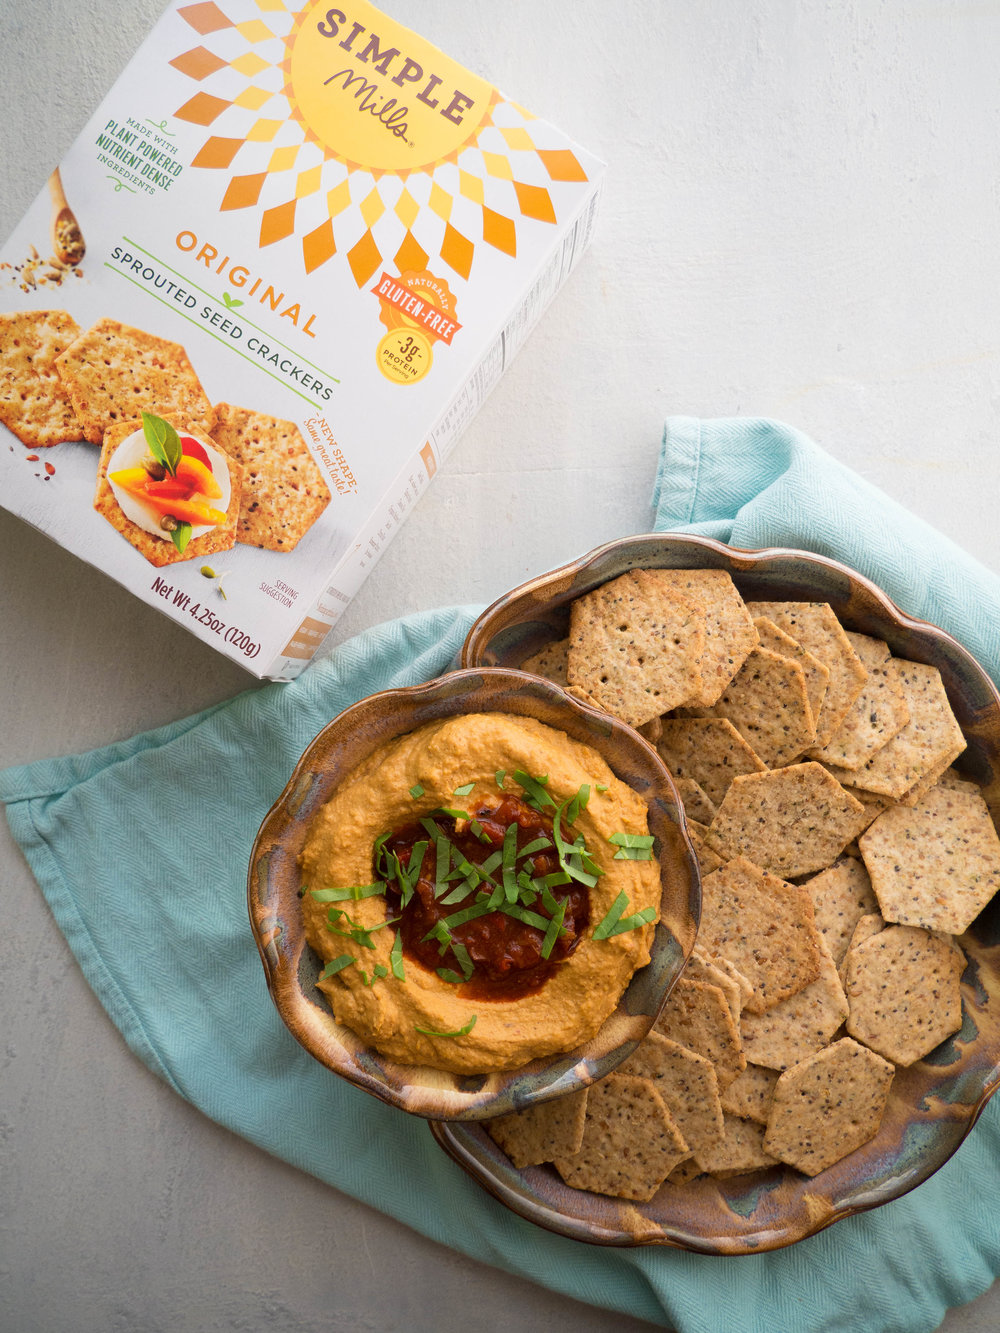 Spicy and smoky harissa hummus! It's extra smooth and creamy thanks to a simple trick! #healthyrecipe #hummus #harissa #dip #snack #glutenfree #vegan